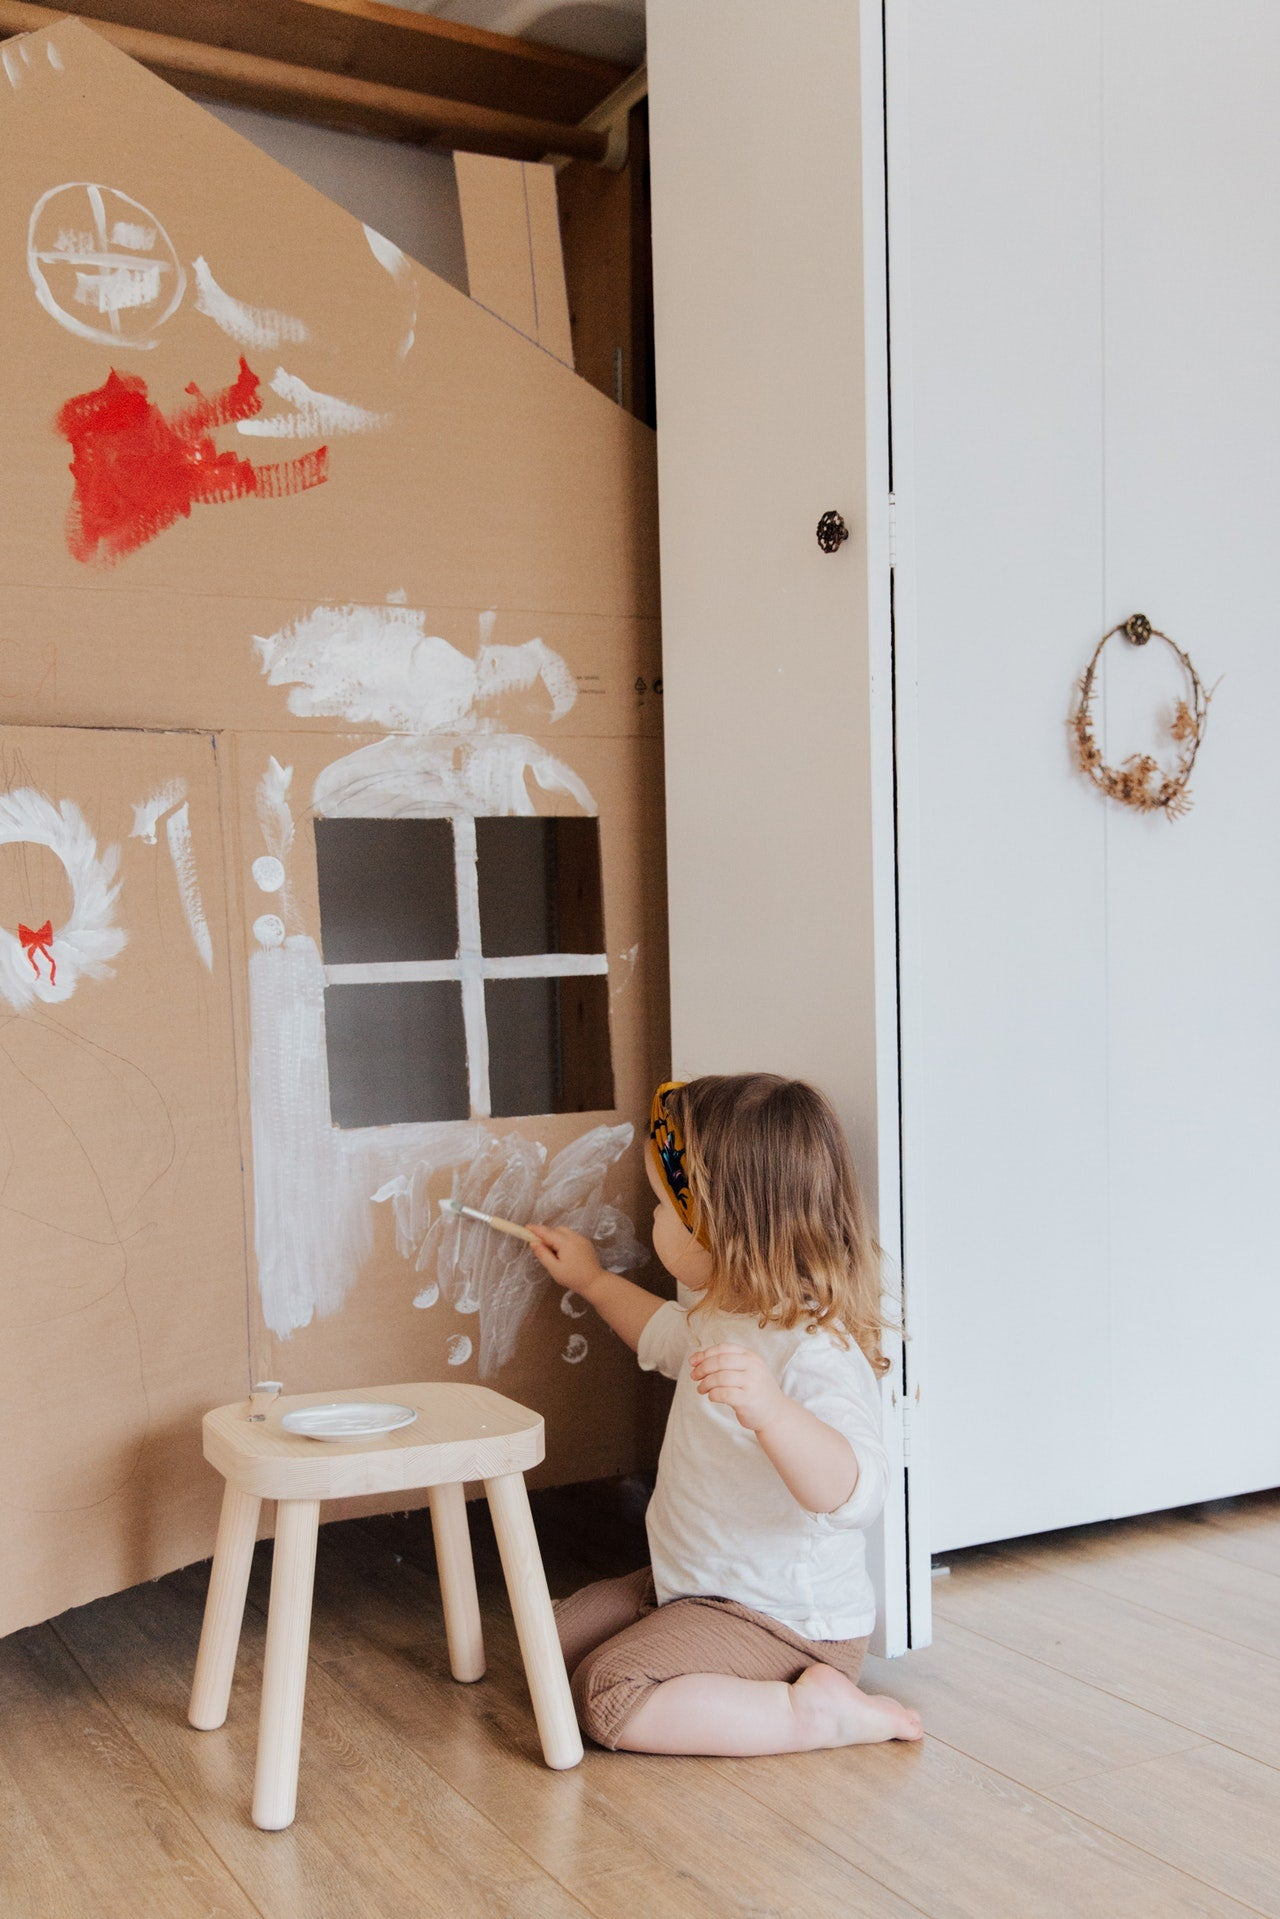 Activity Ideas | Getting creative with cardboard | Milkbar NZ